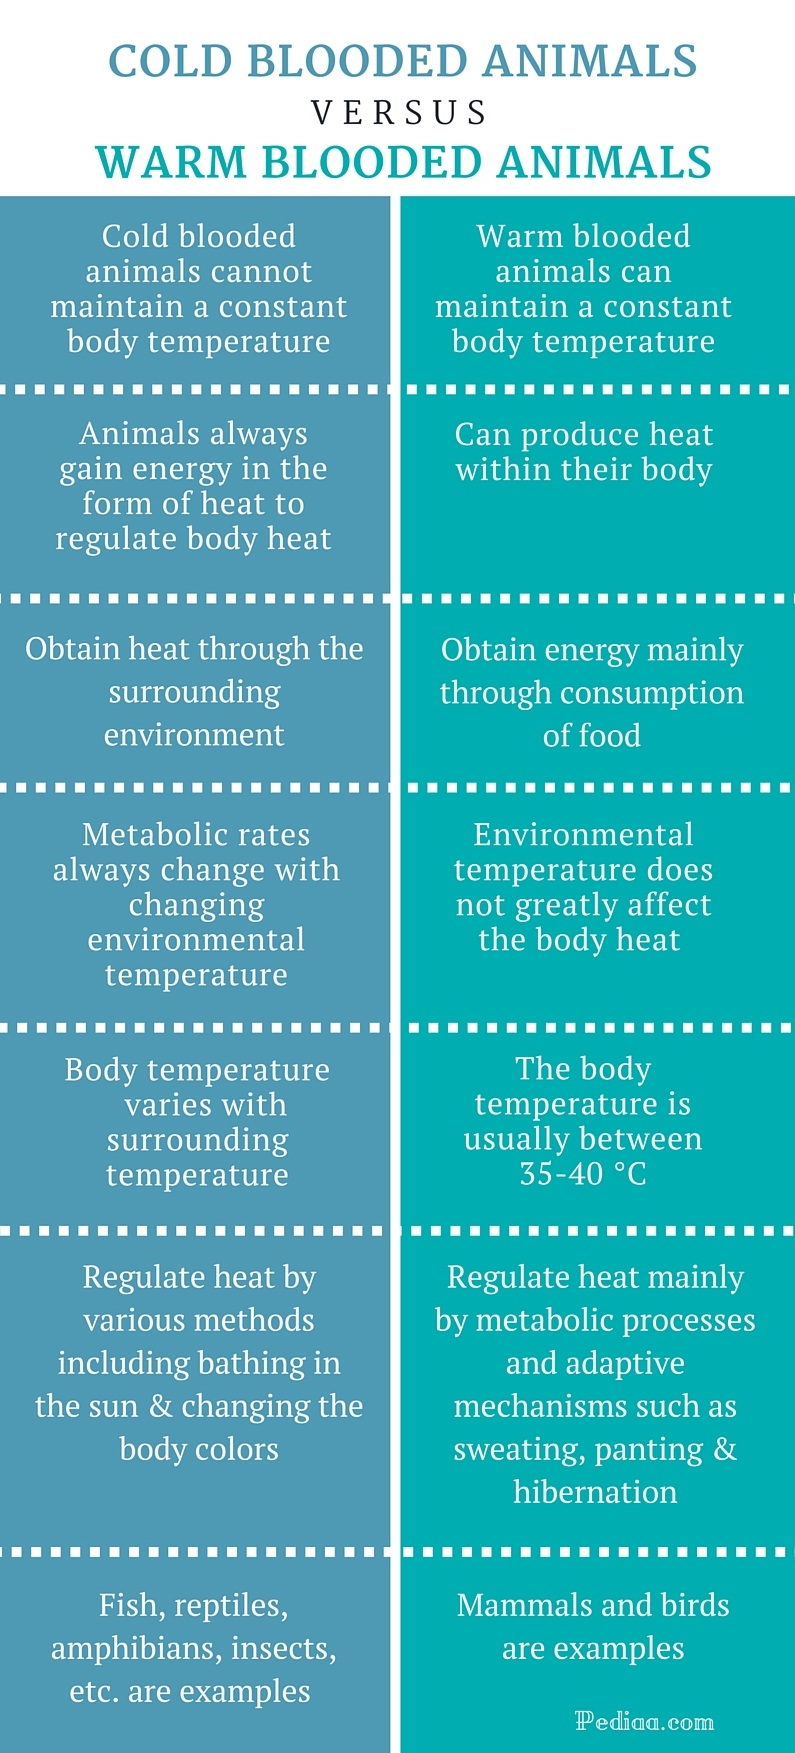 Difference Between Cold Blooded and Warm Blooded Animals - infographic